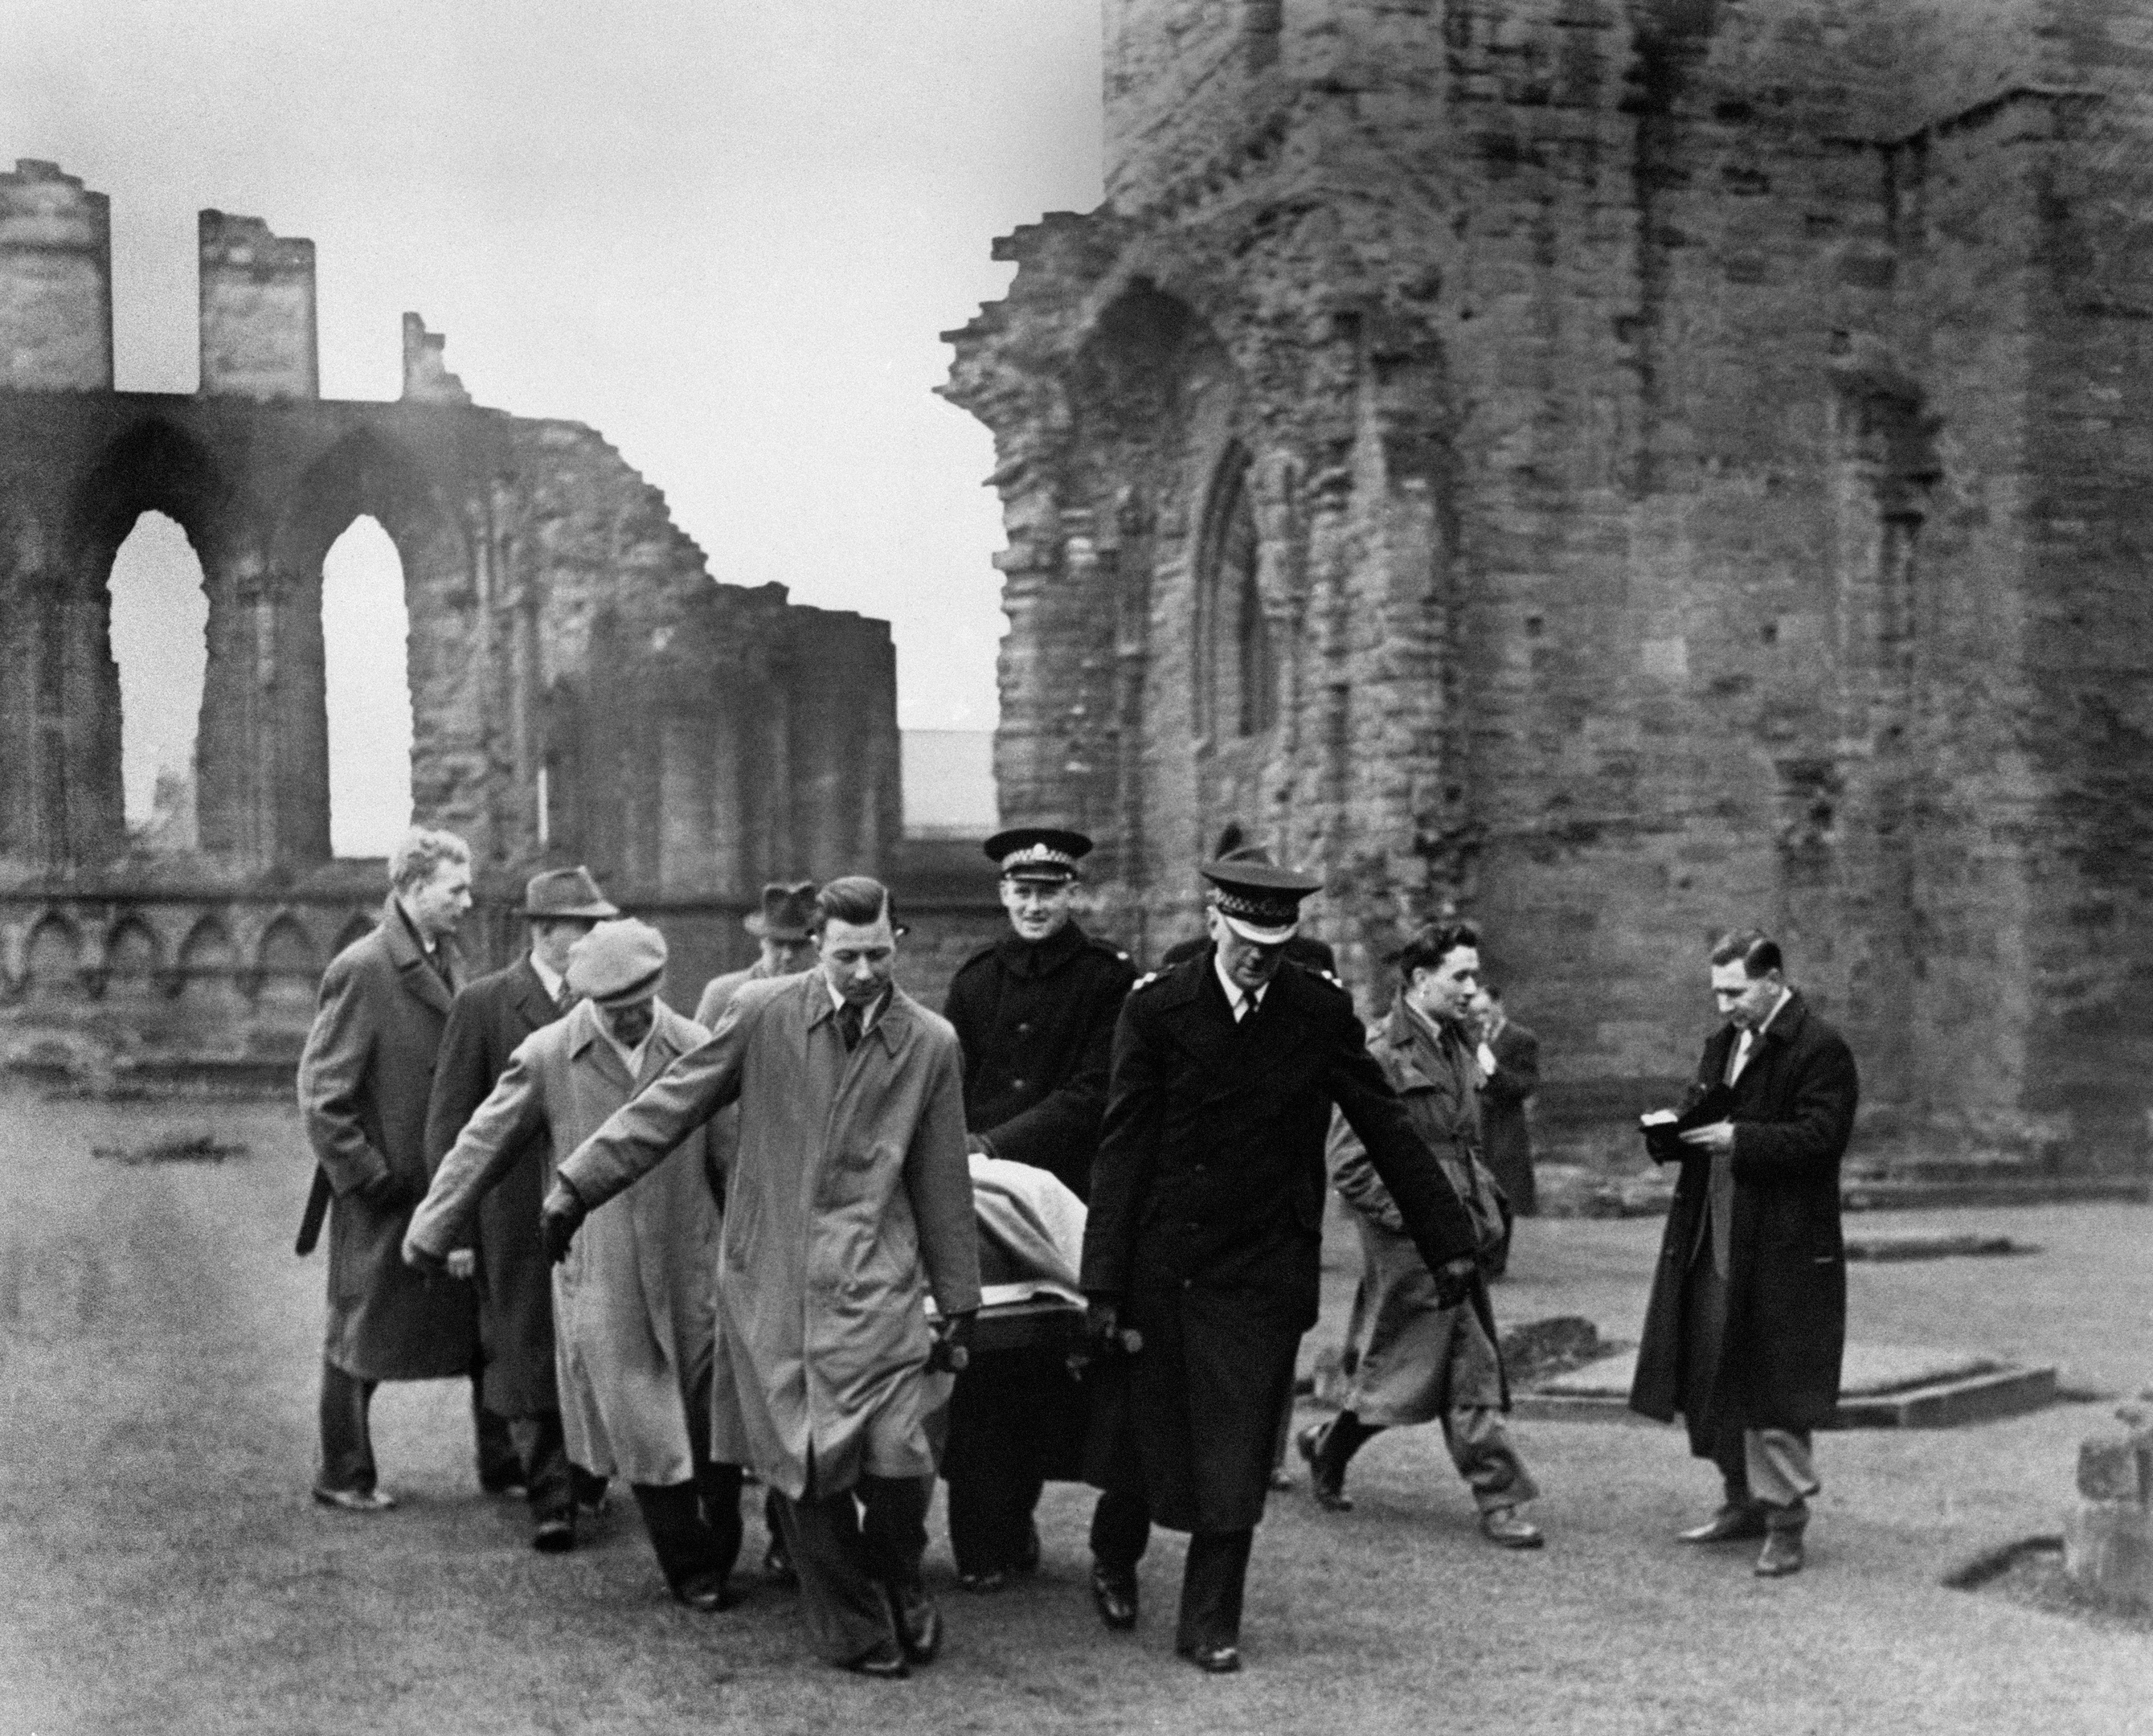 The Stone of Scone - the Scottish Stone of Destiny - missing from Westminster Abbey since Christmas Day, 1950 - being removed from Abroath Abbey, Forfarshire, Scotland after being handed to the Custodian of the Abbey James Wiseheart by Scottish Nationalists.